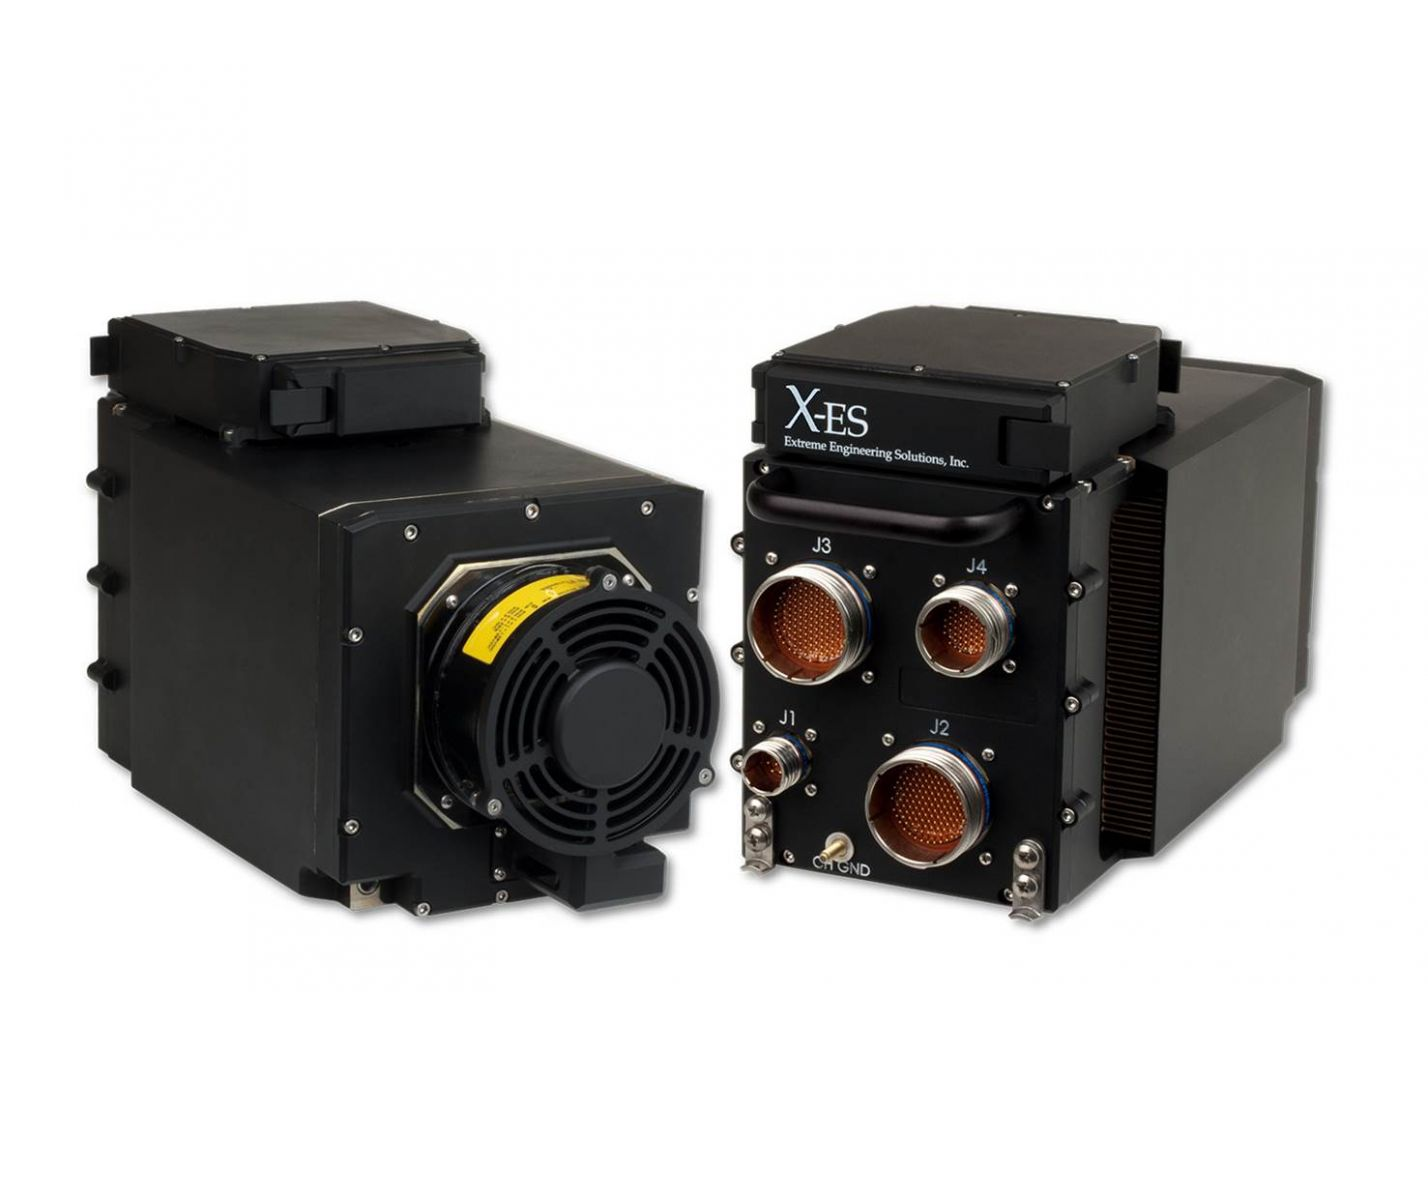 XPand4208 - Extreme Engineering Rugged System